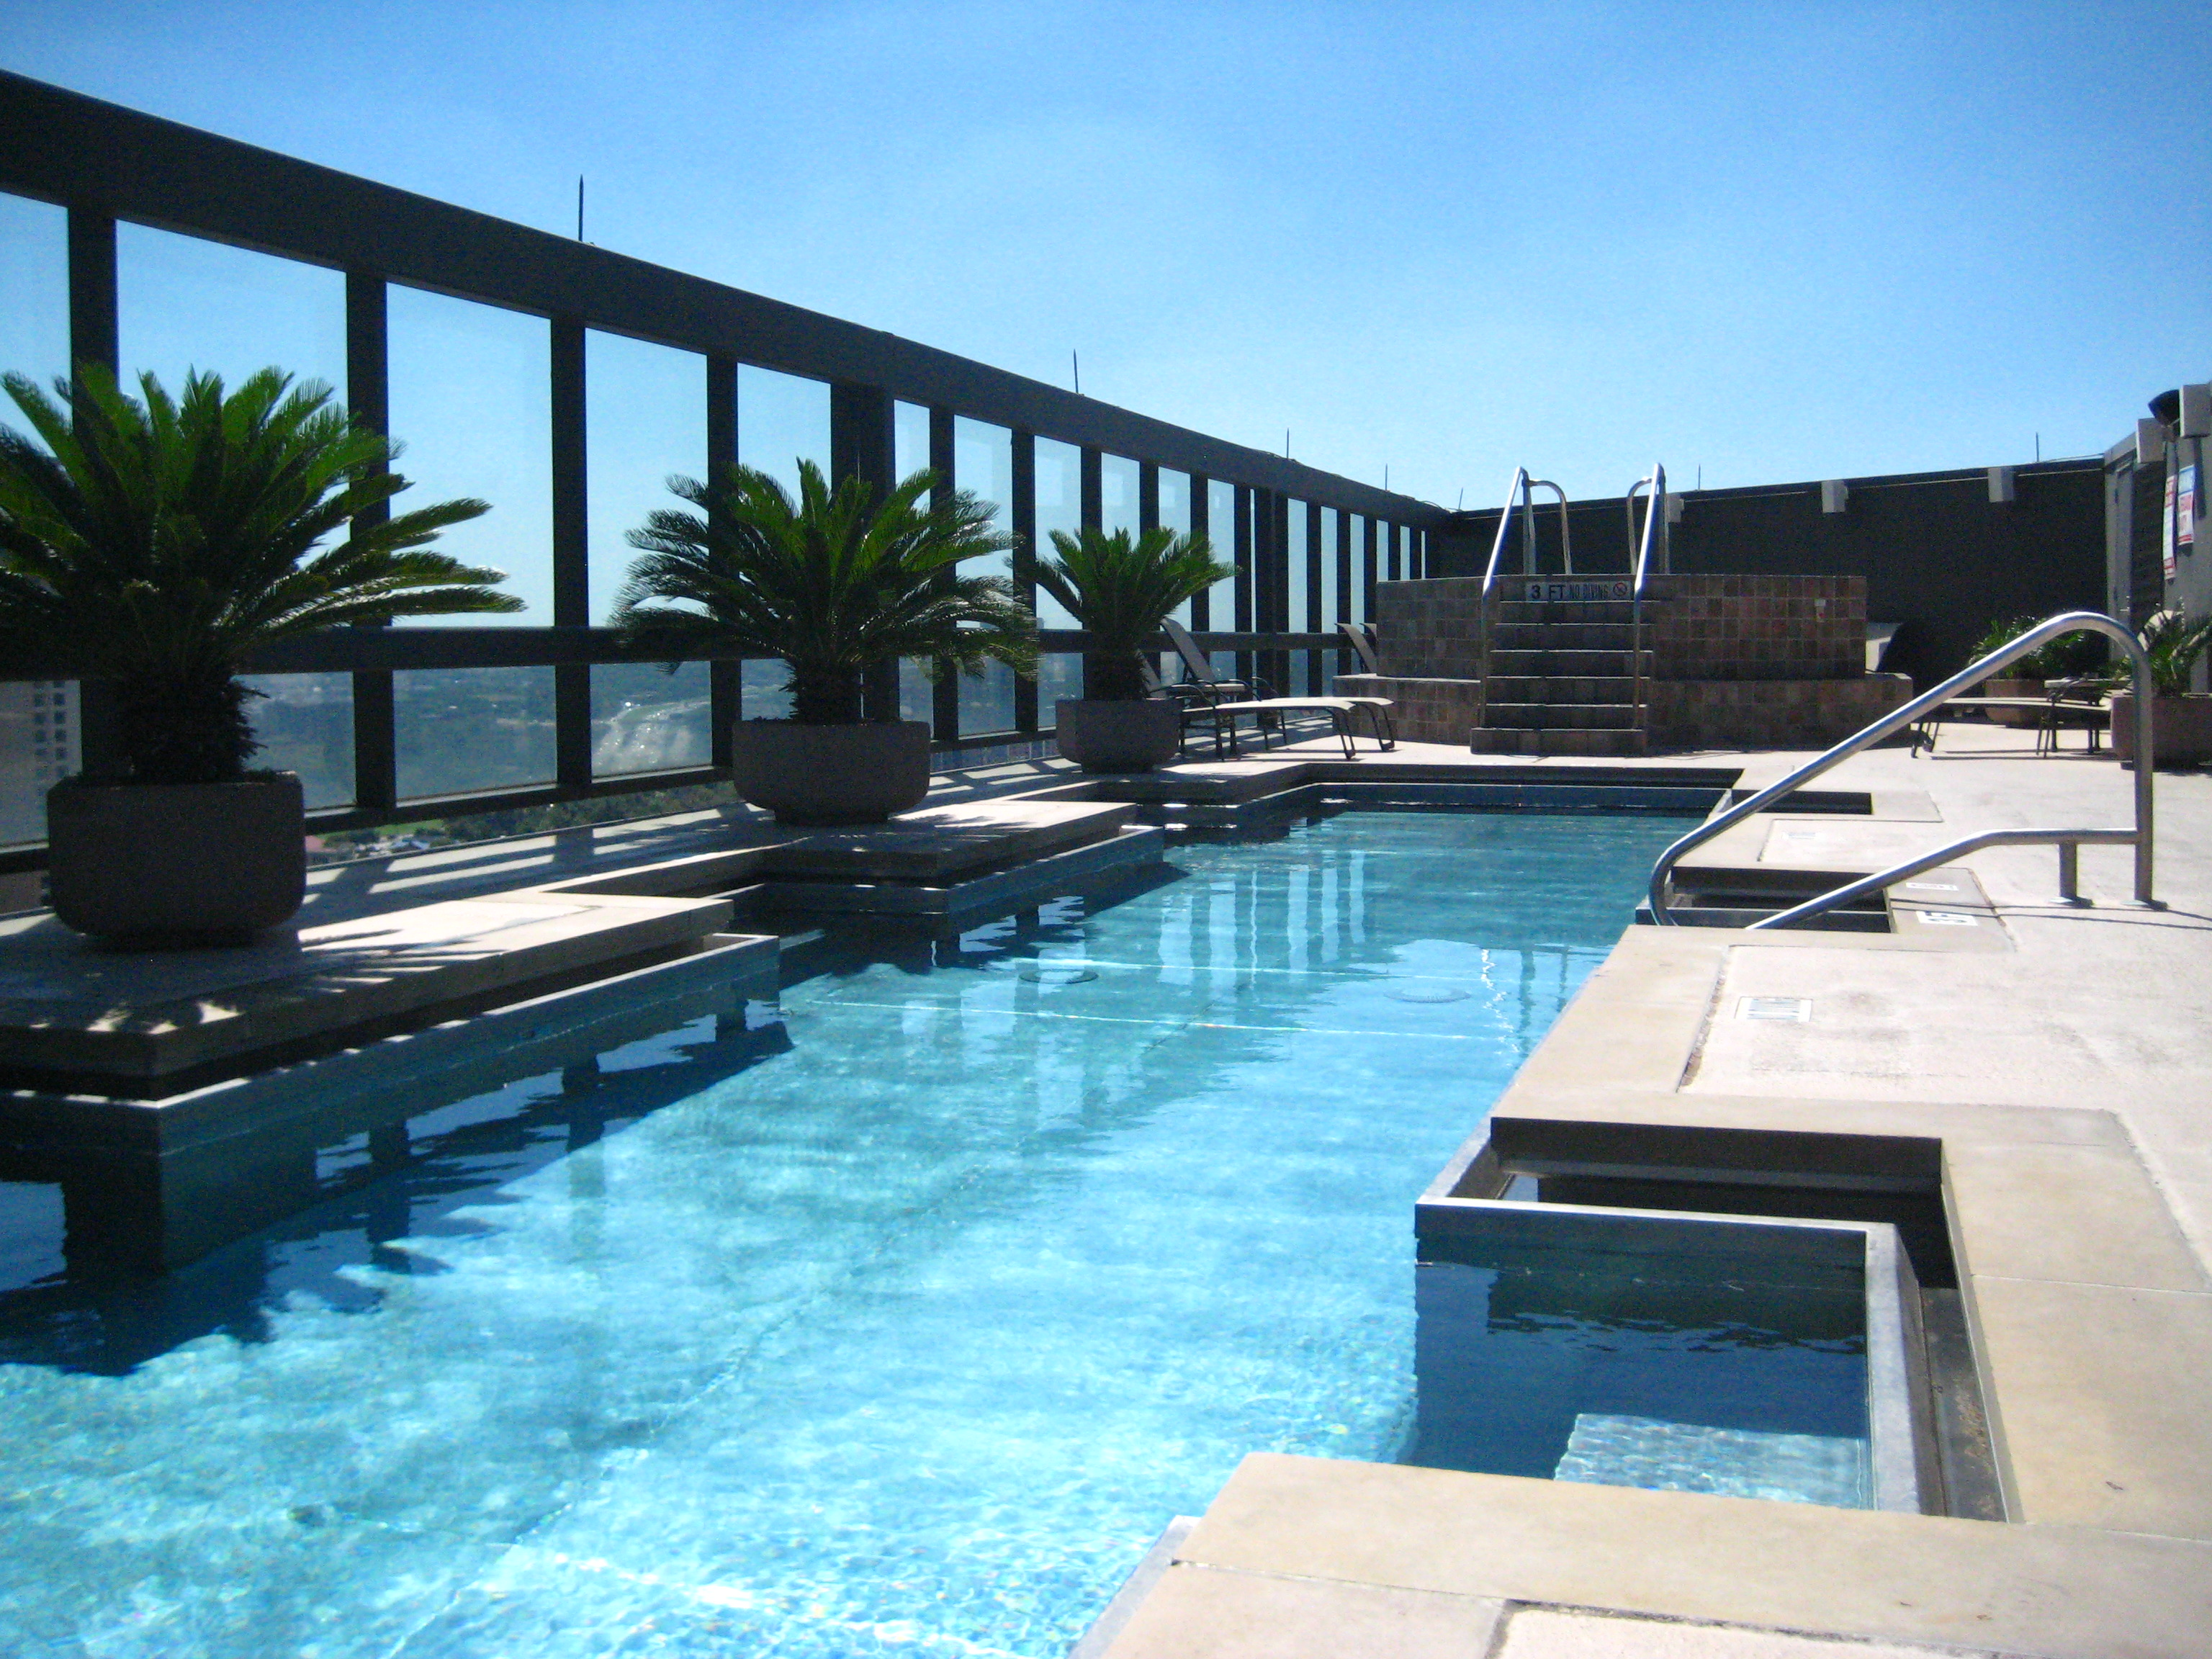 52 room hotel with roof top pool not far from Patong Beach | Aqua